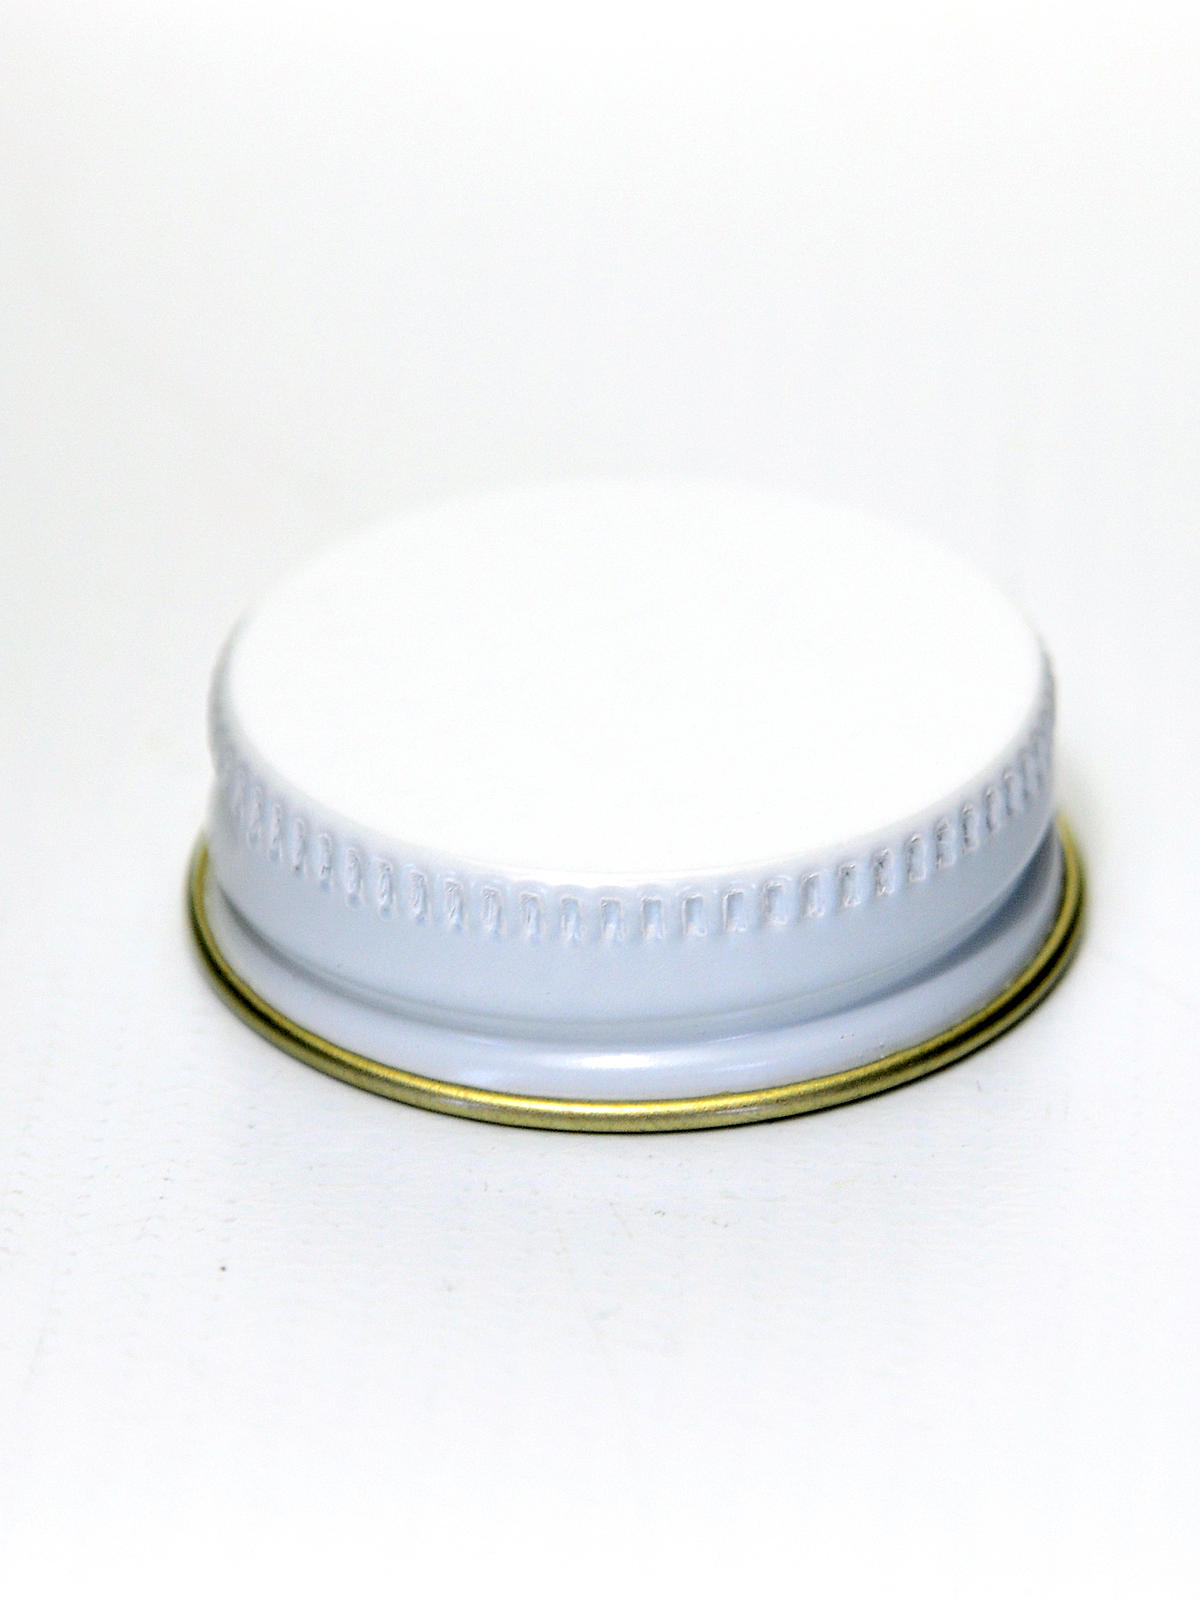 White Lid Only Fits 1 oz. Jar